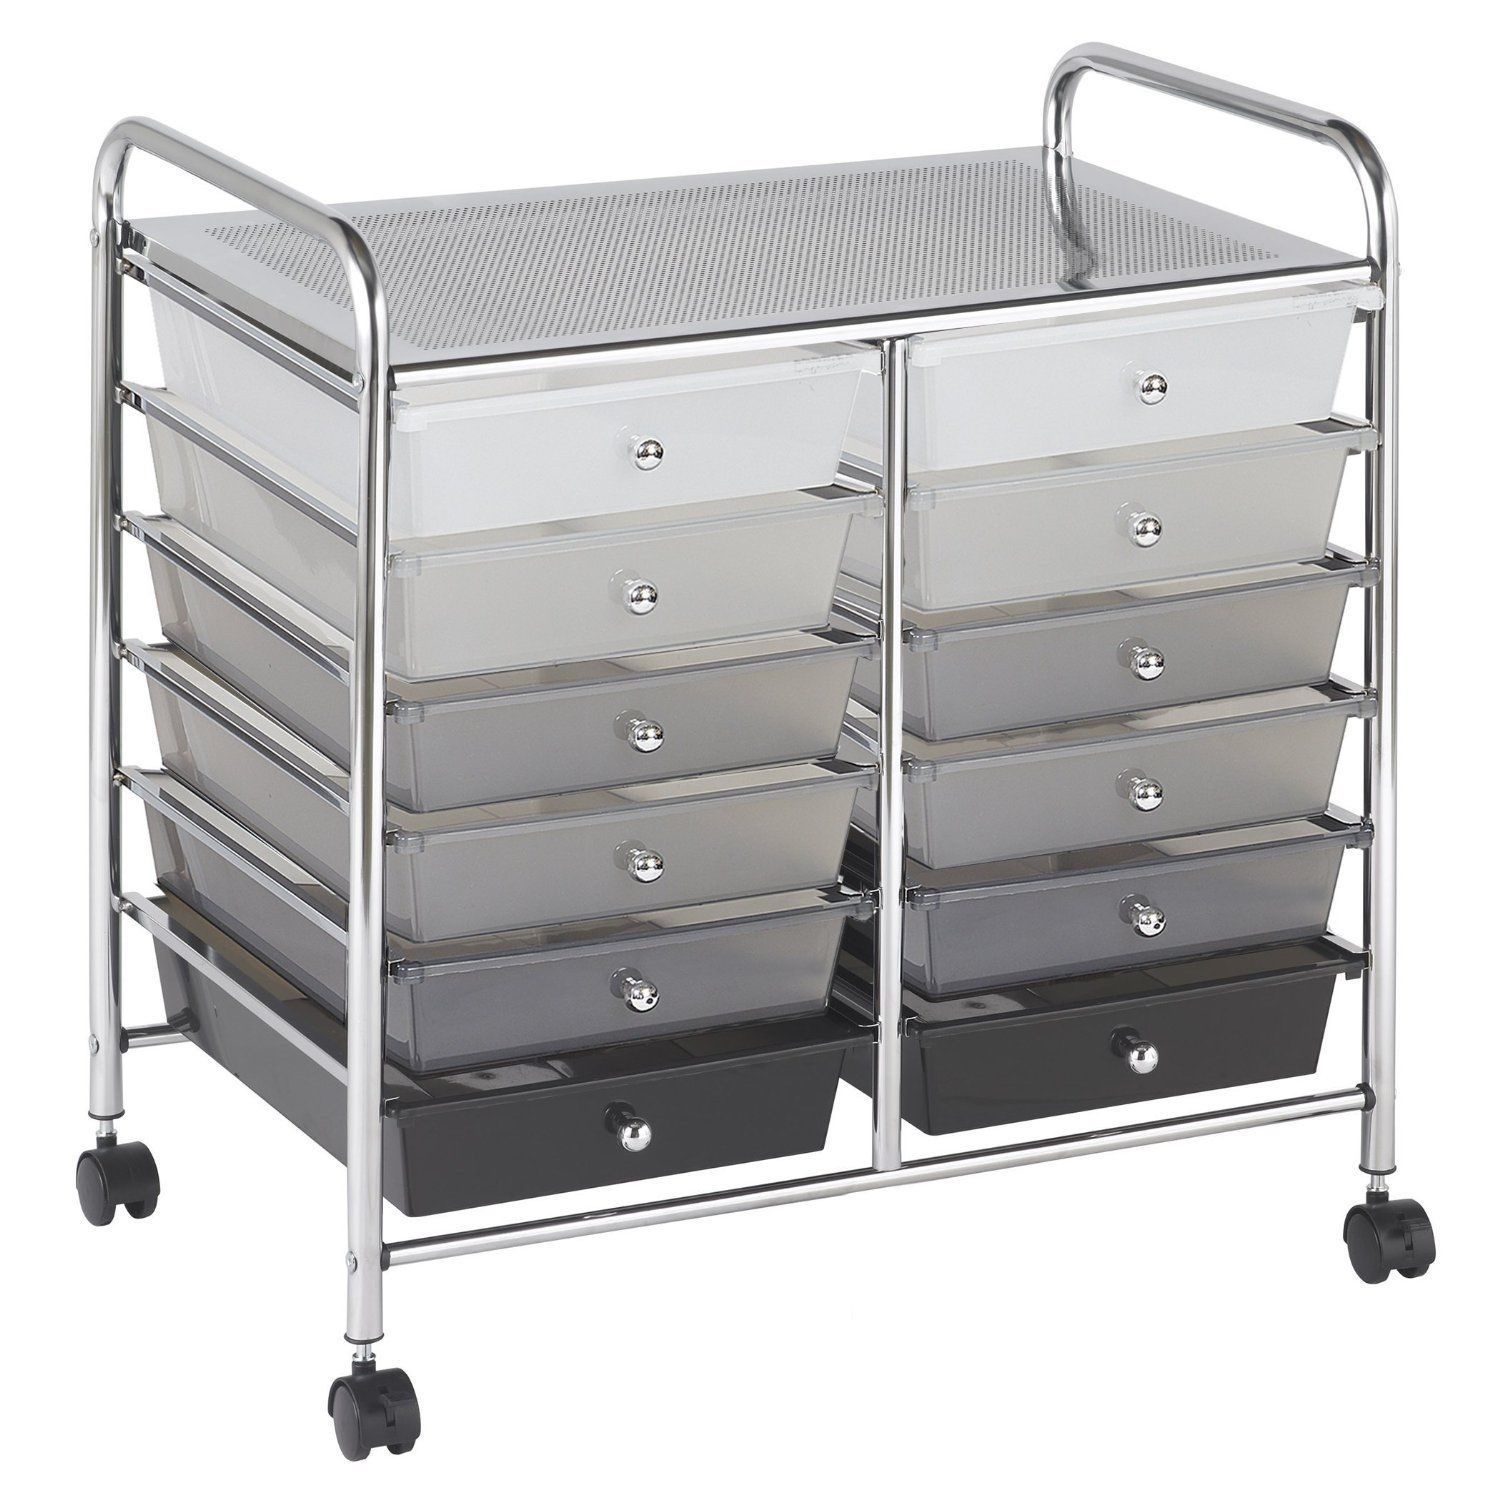 new rolling storage organization 12 shelves plastic